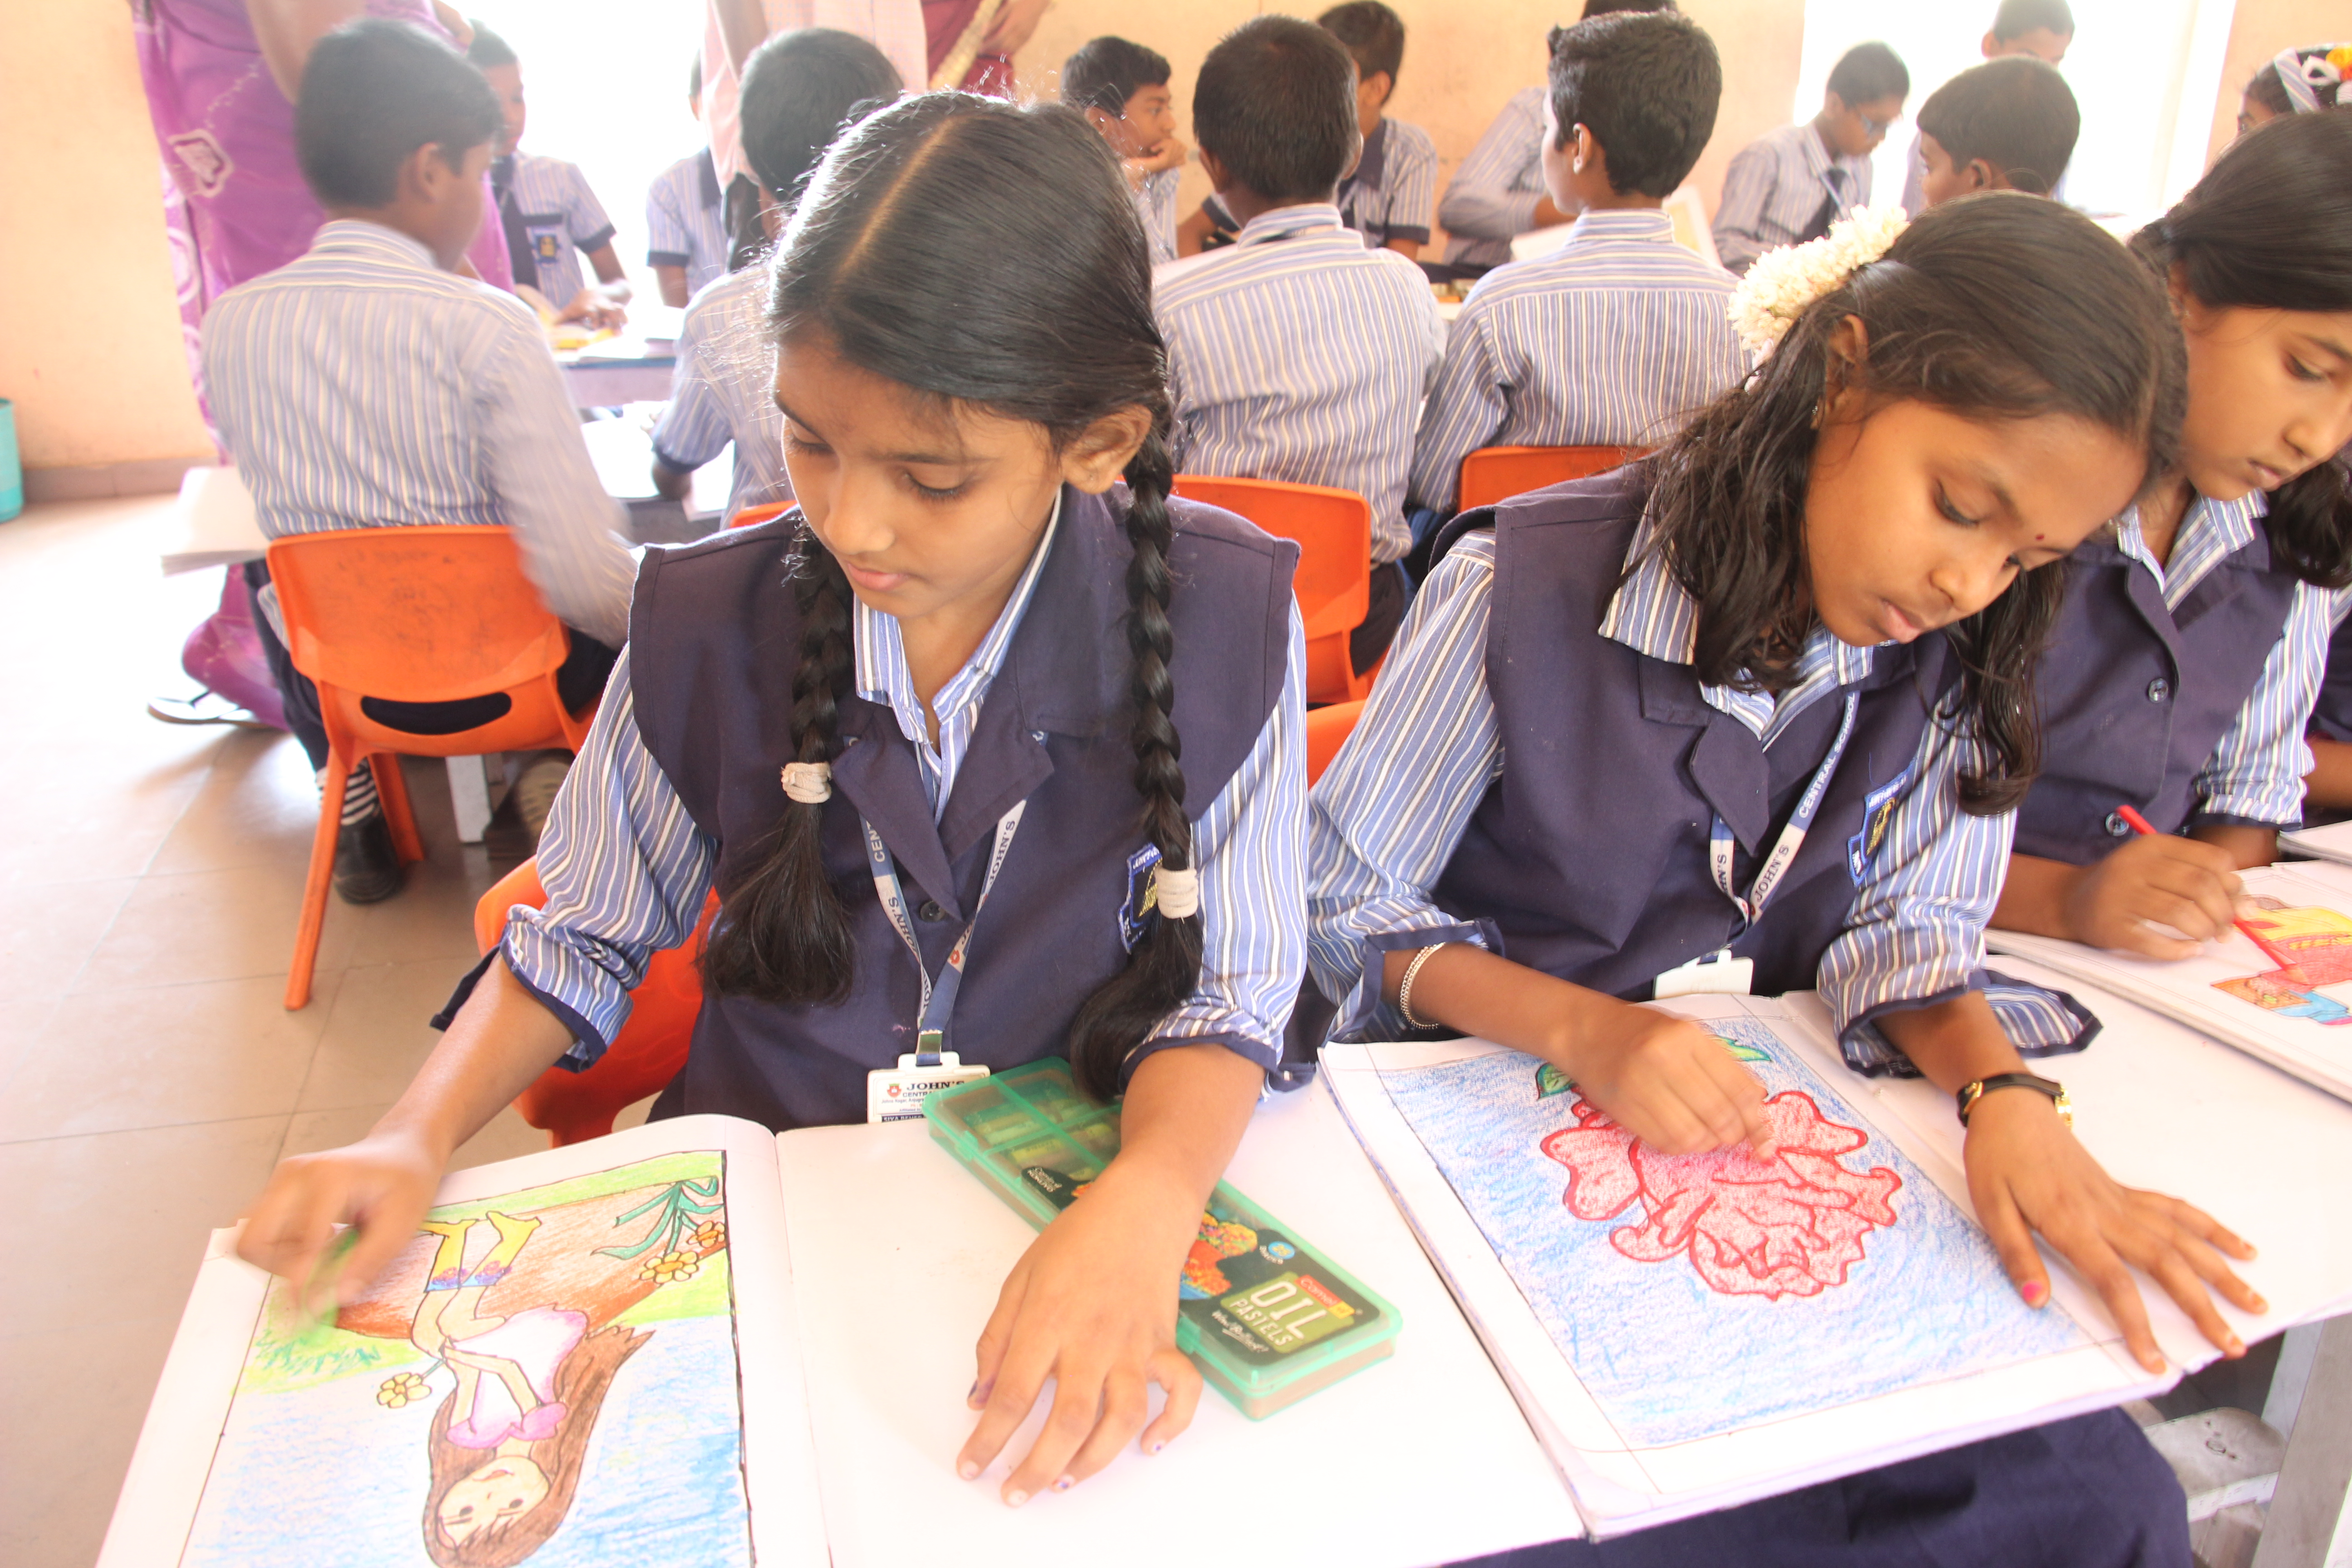 Showing creativity - Drawing Activity